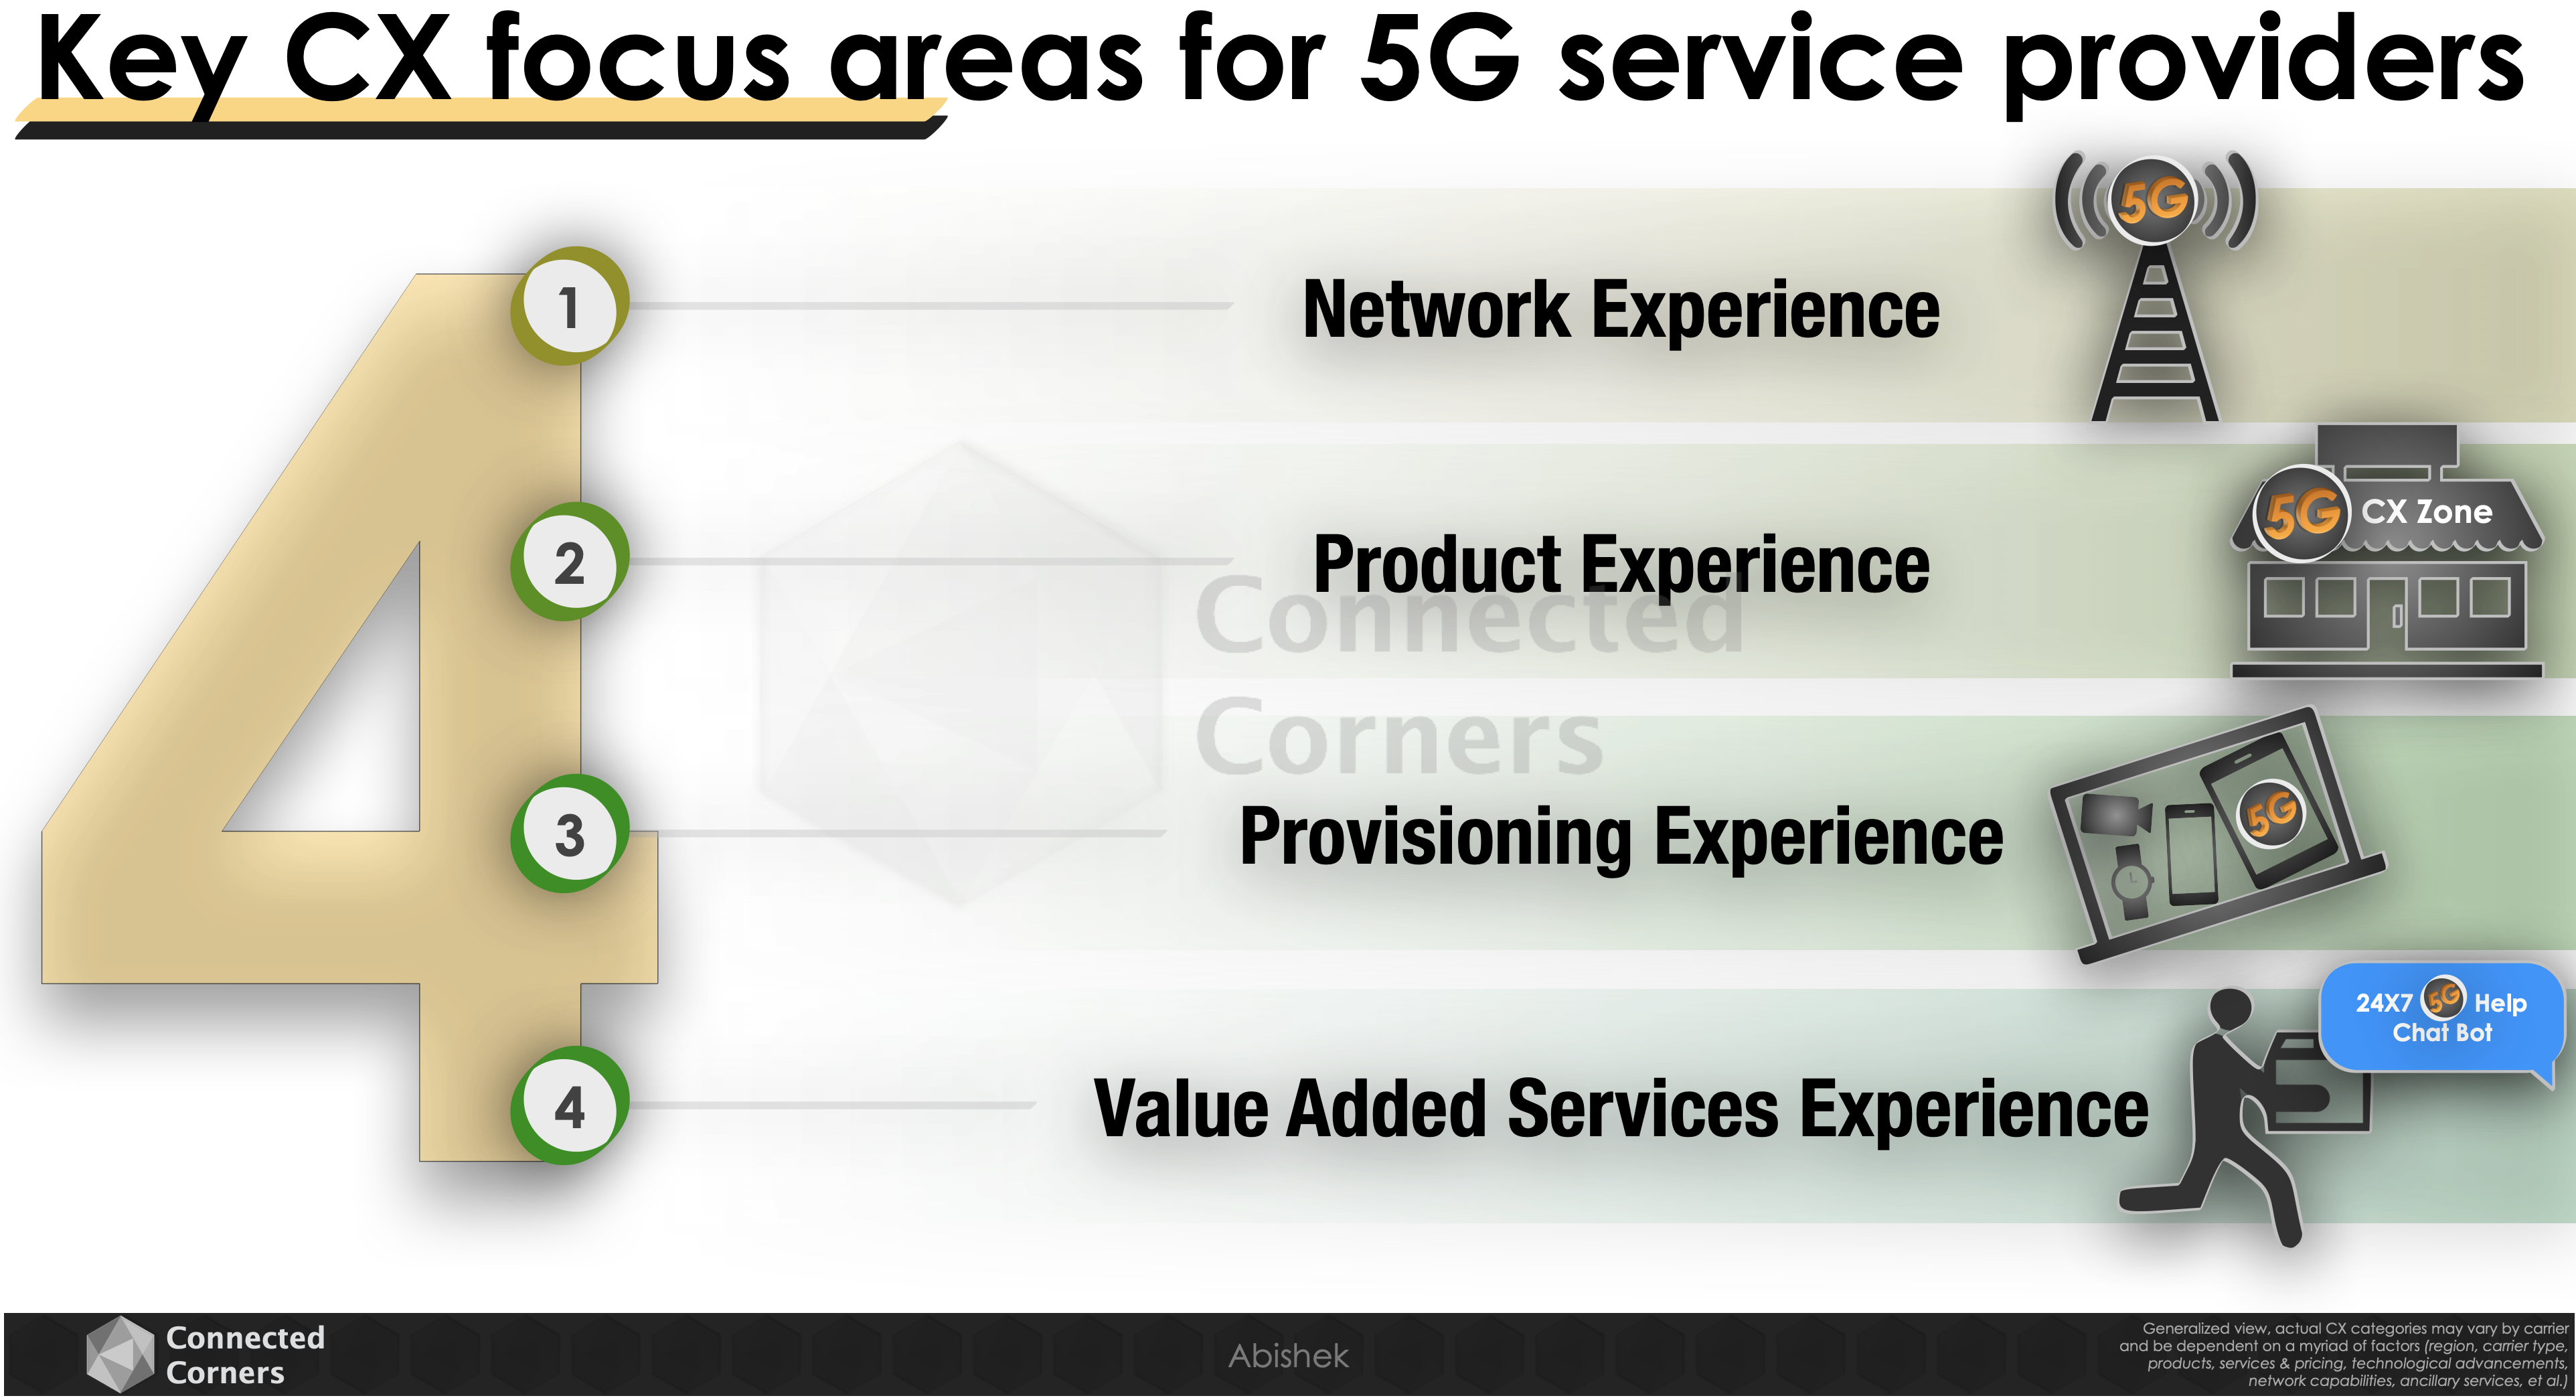 CX focus areas for 5G service providers - Connected Corners